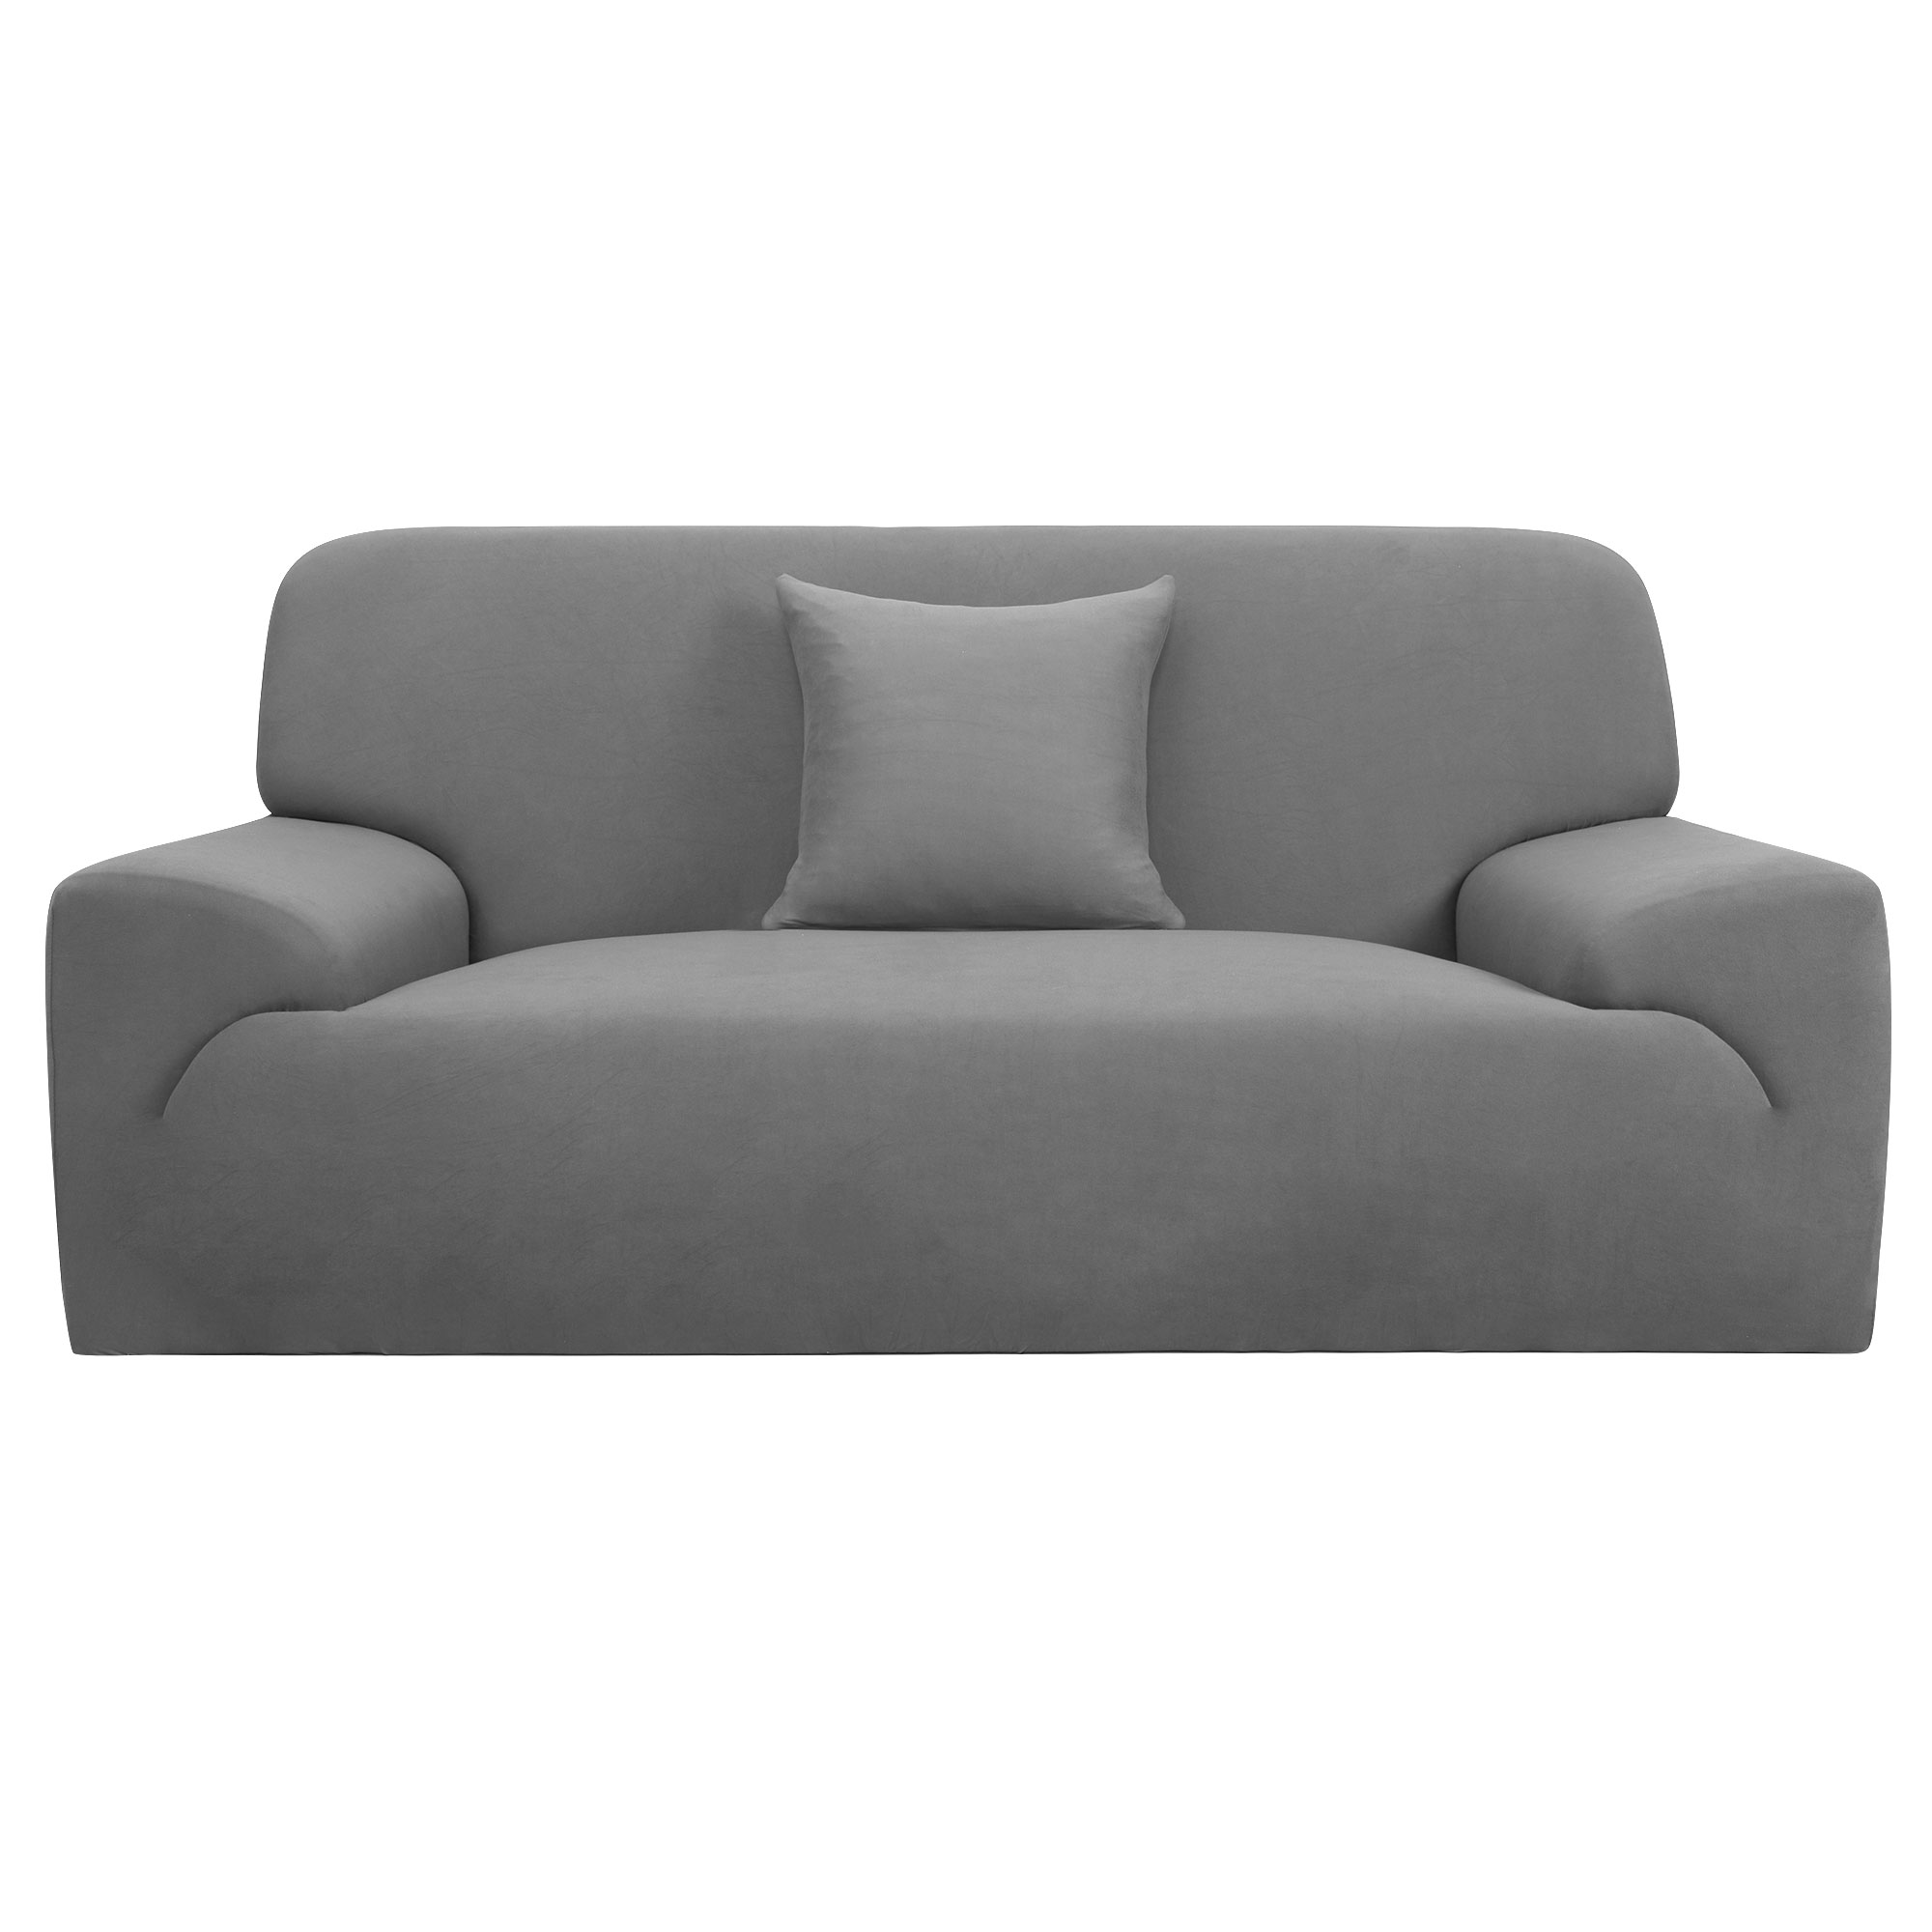 Home Furniture Loveseat Couch Stretch Cover Slipcover Protector Gray 55''-74''